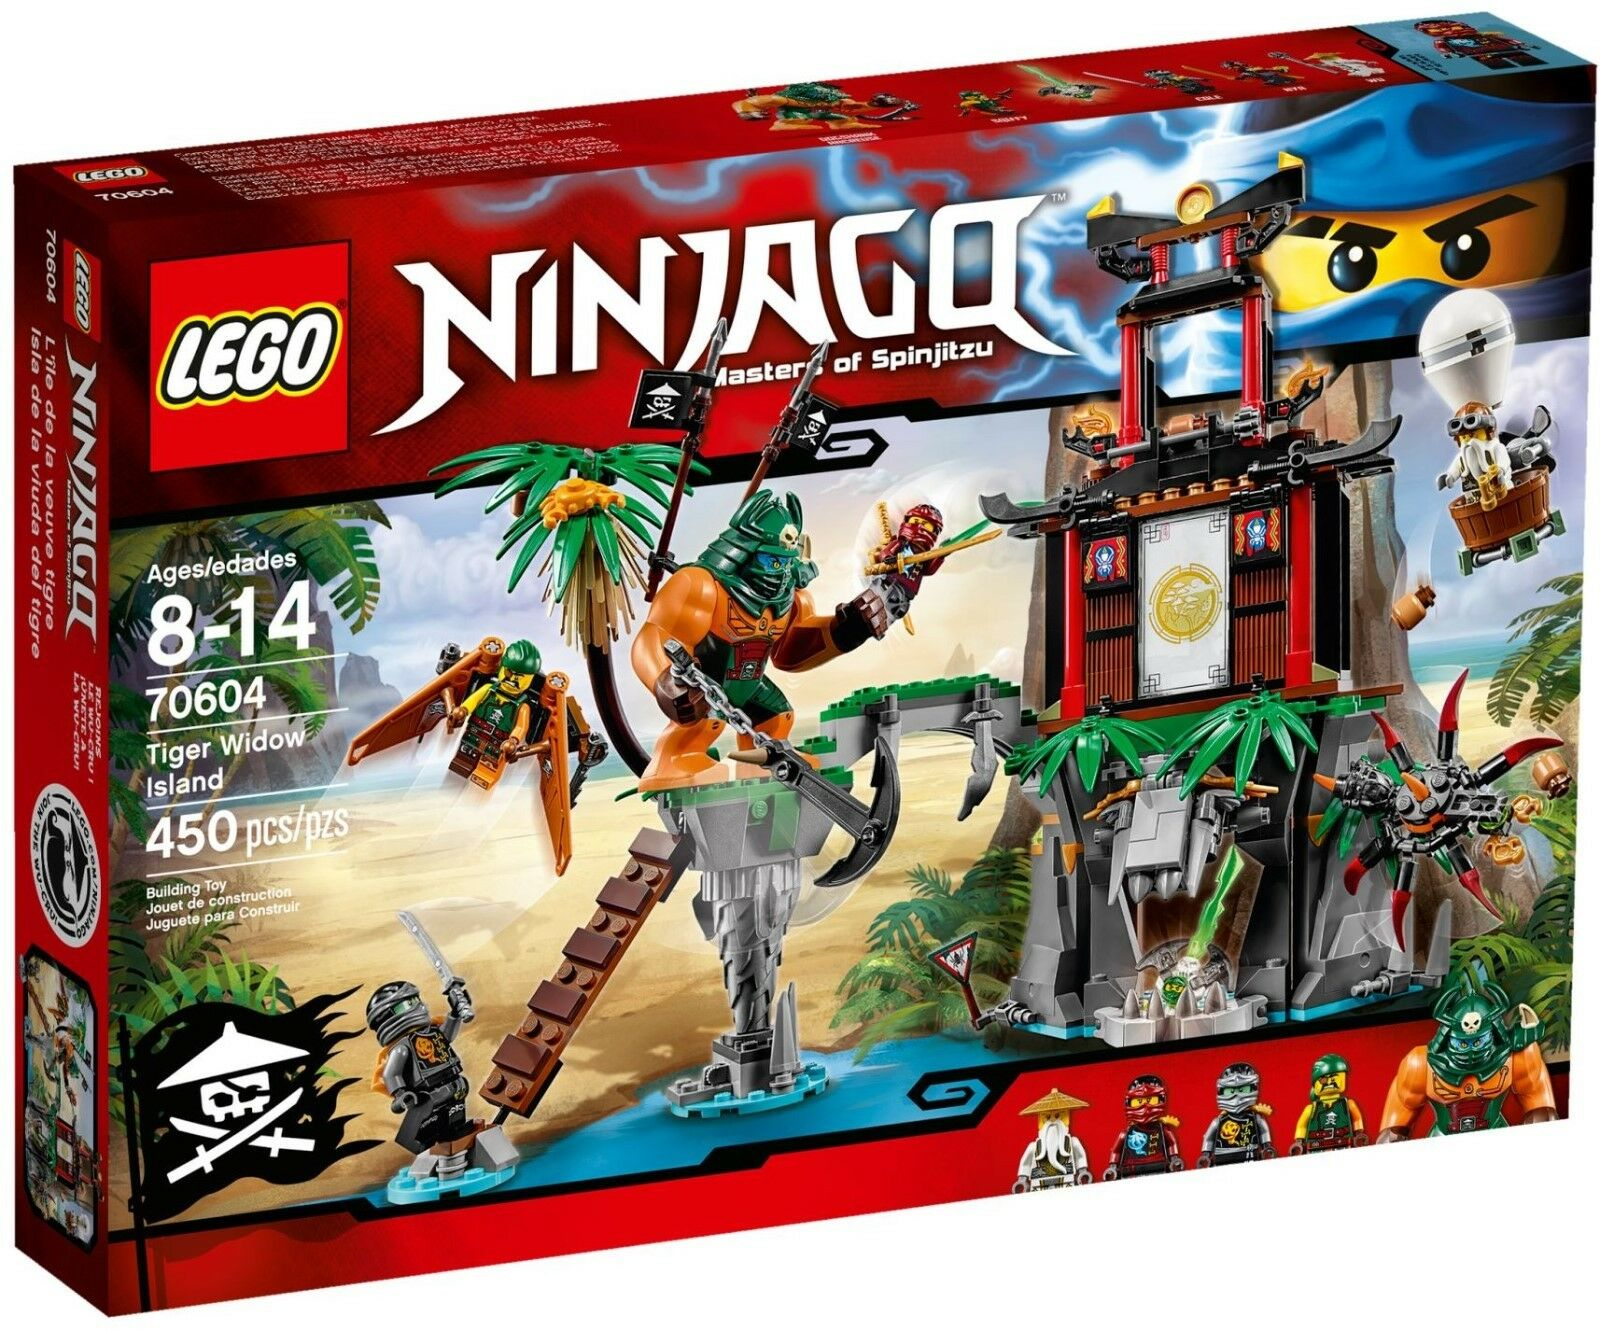 Lego 70604 Tiger Widow Island Brand New In Sealed Box ※SAME DAY DESPATCHED※